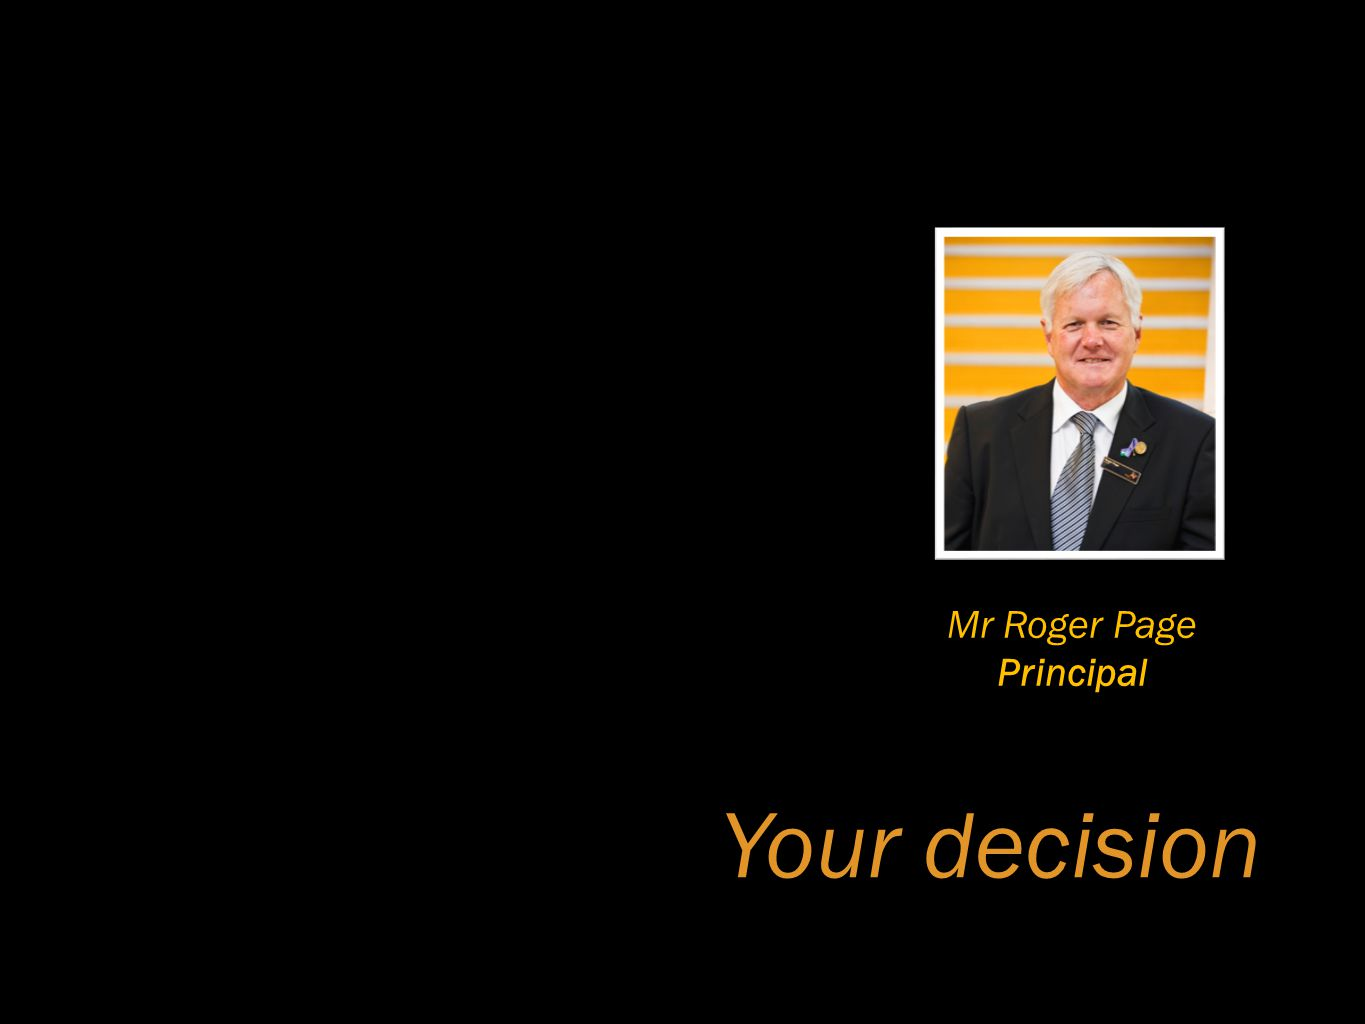 Mr Roger Page Principal Your decision